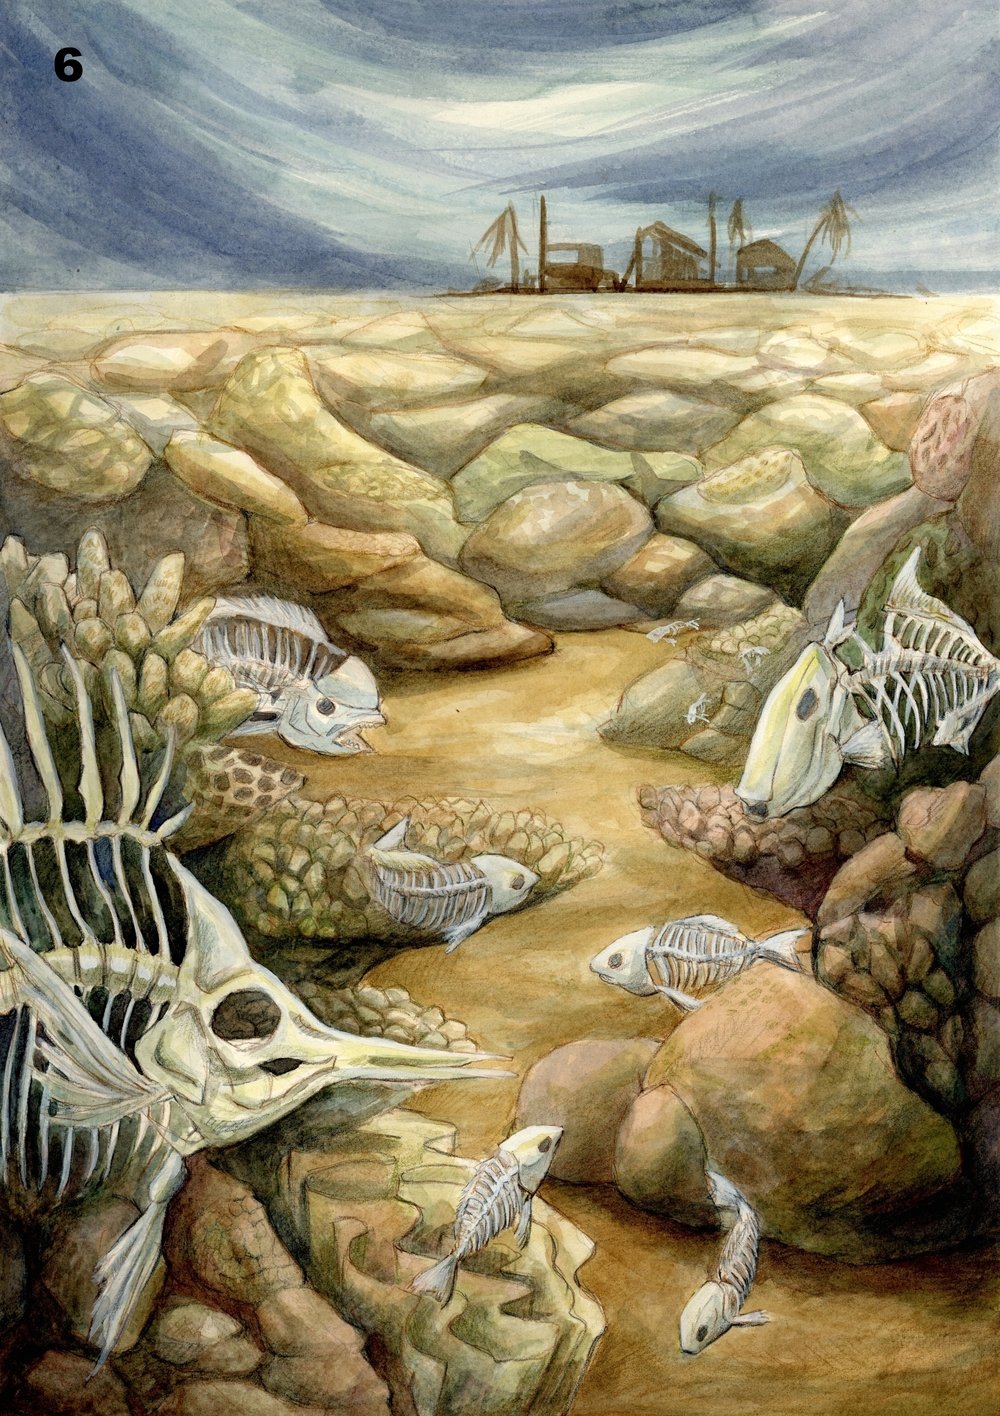 Ocean Acidification - Hsin Chen